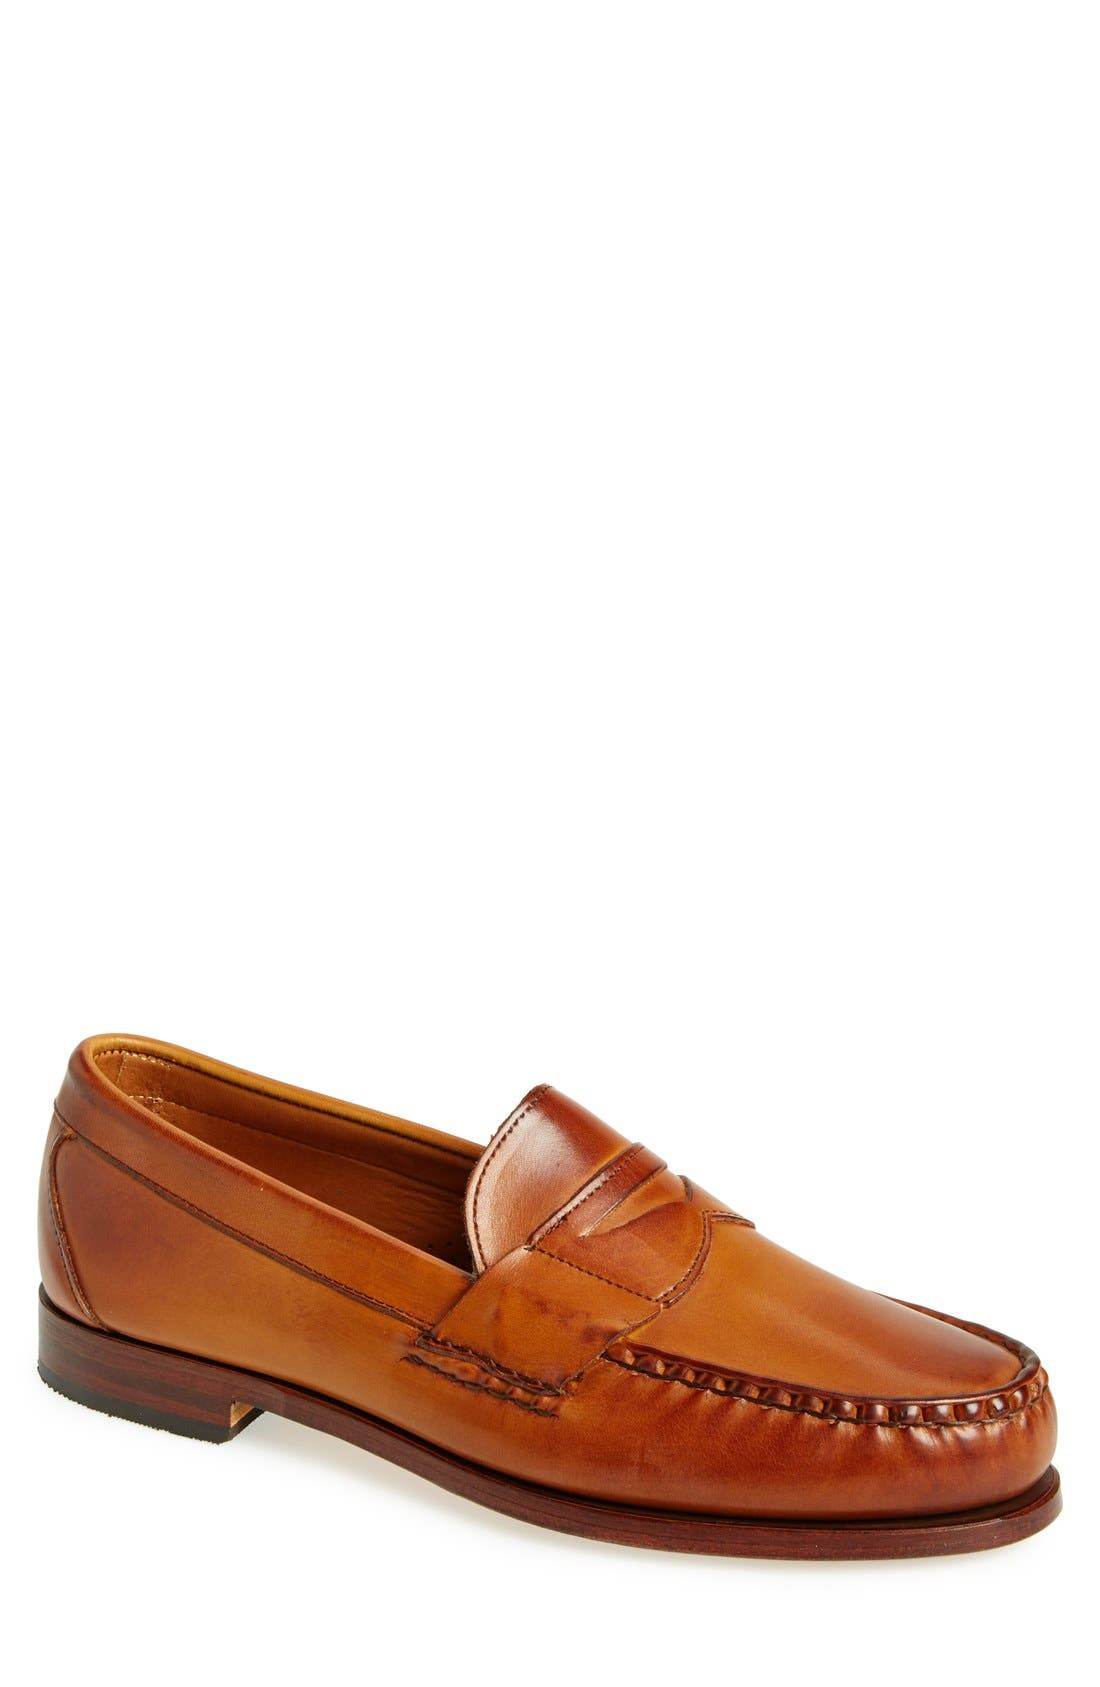 'Cavanaugh' Penny Loafer,                         Main,                         color, WALNUT LEATHER